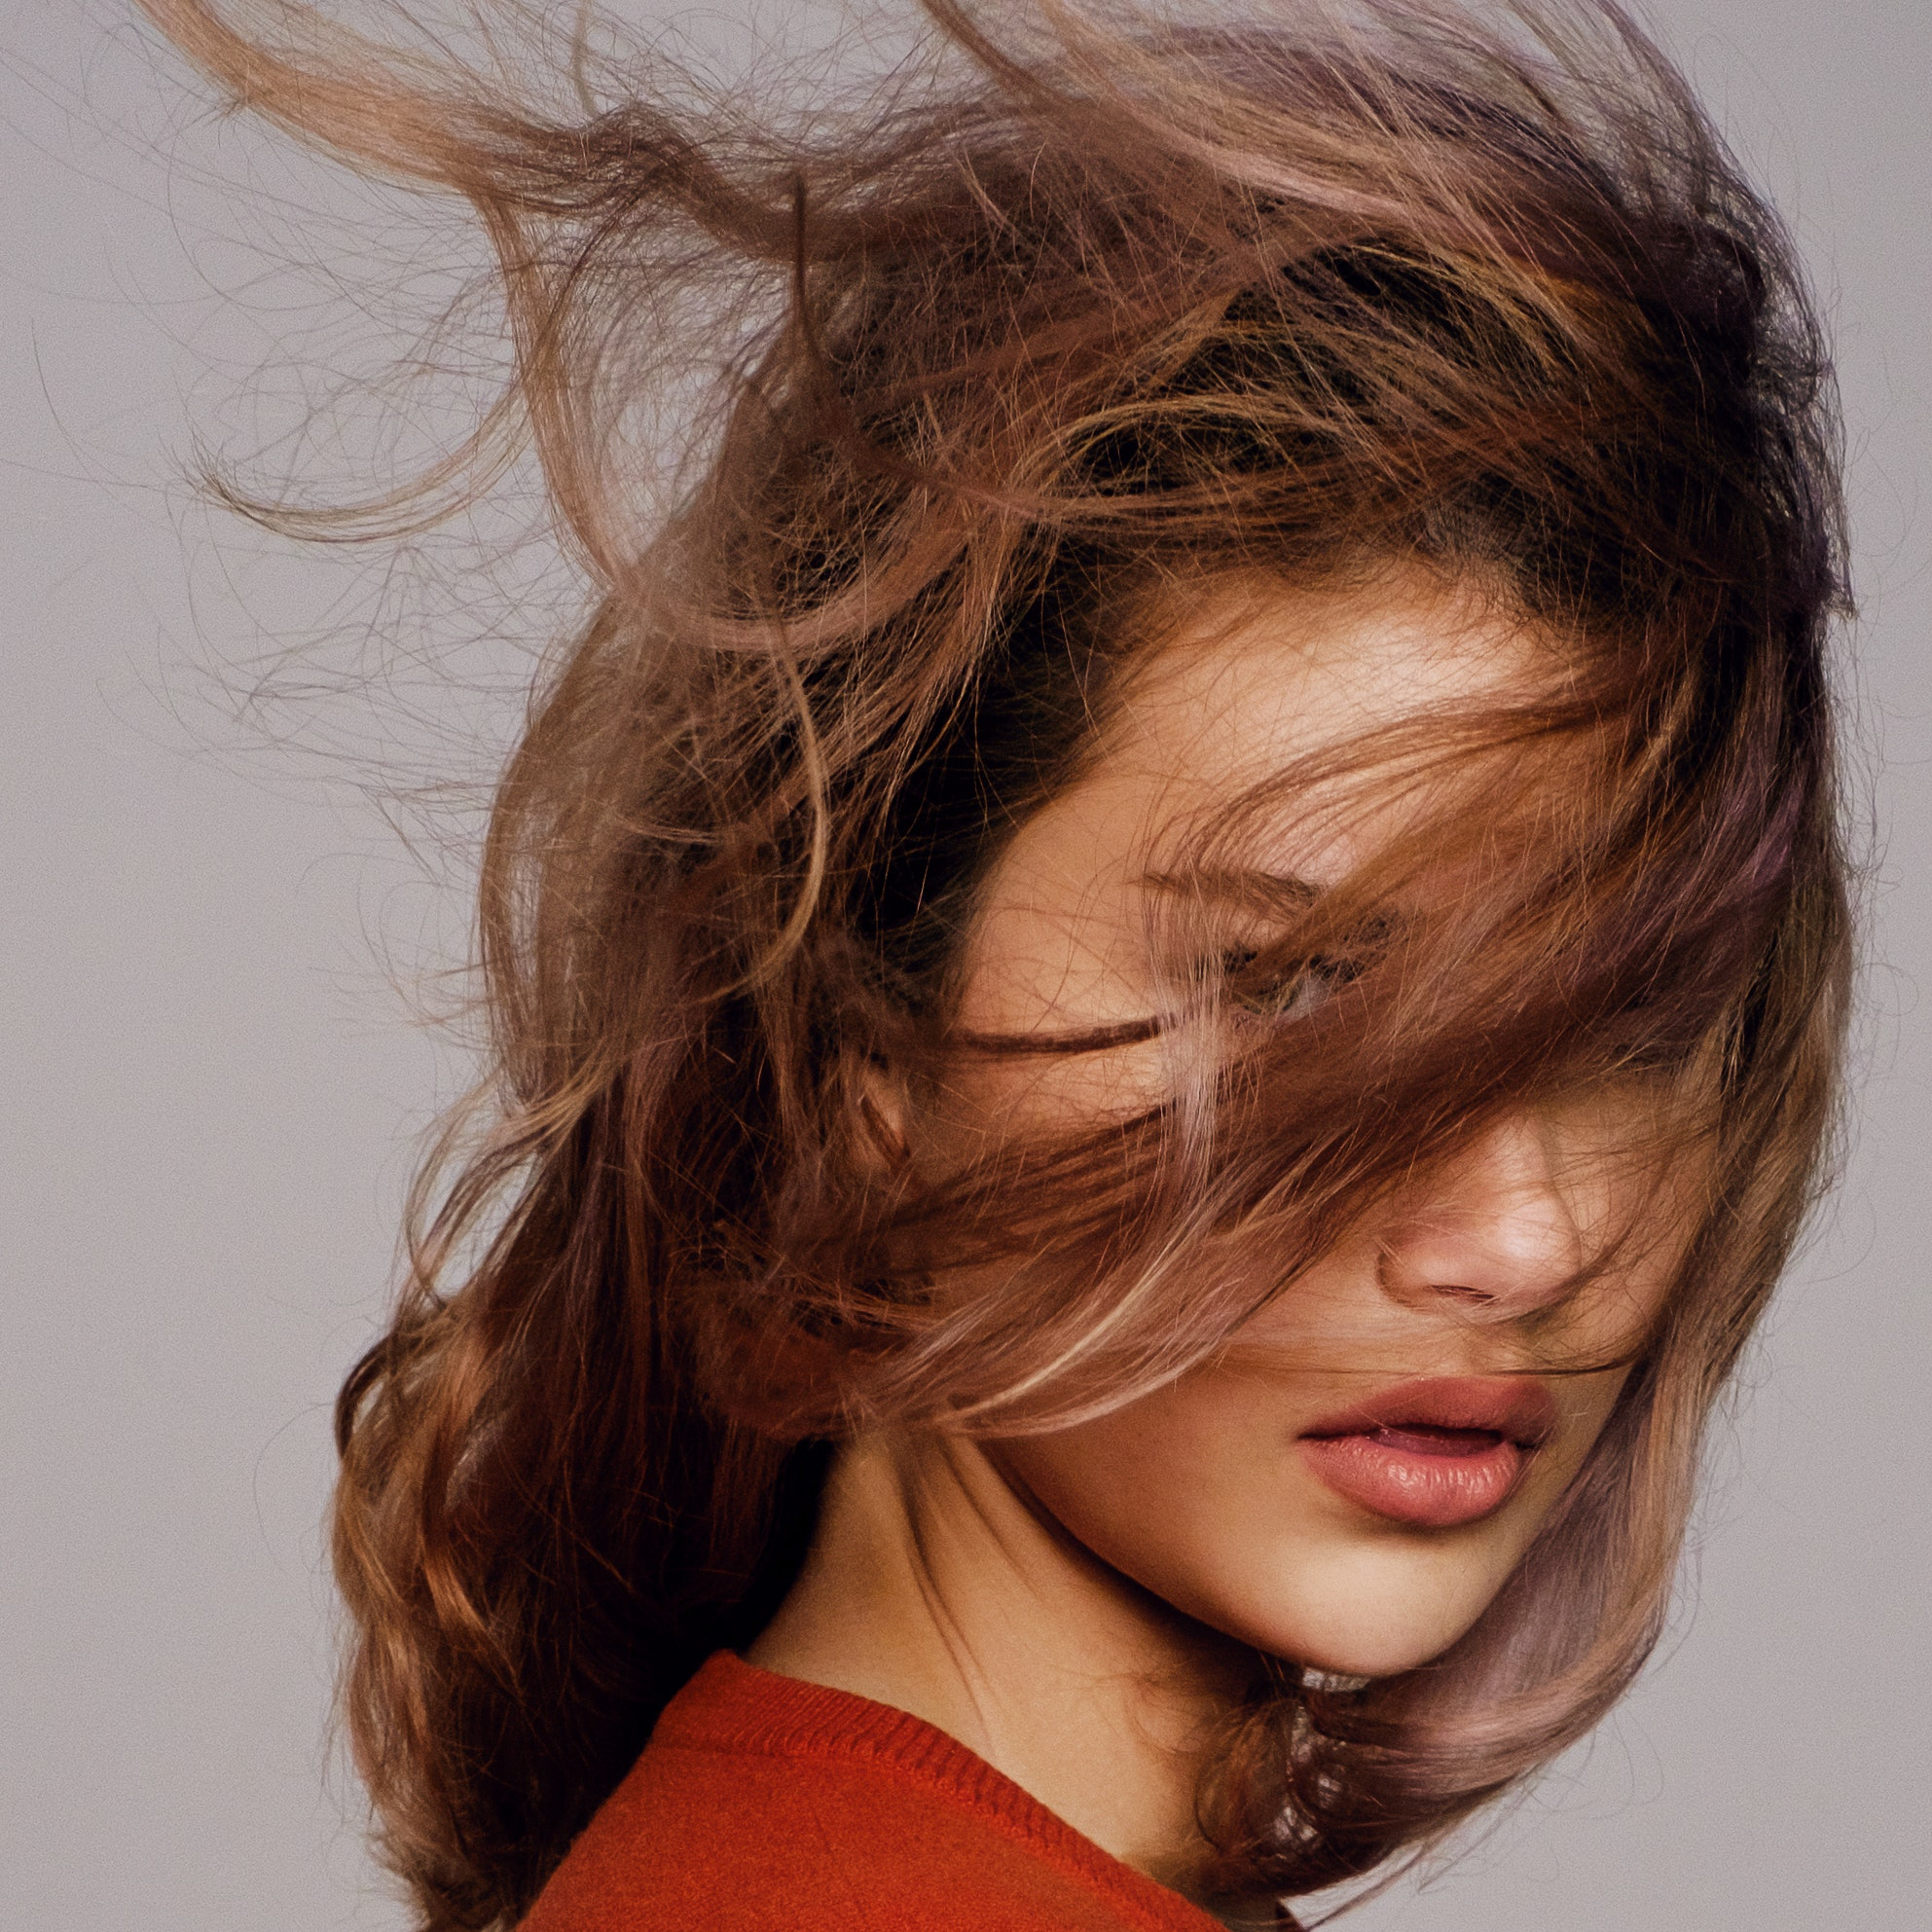 What Is a Second Day Dry Shampoo and Do You Really Need One? We Investigate